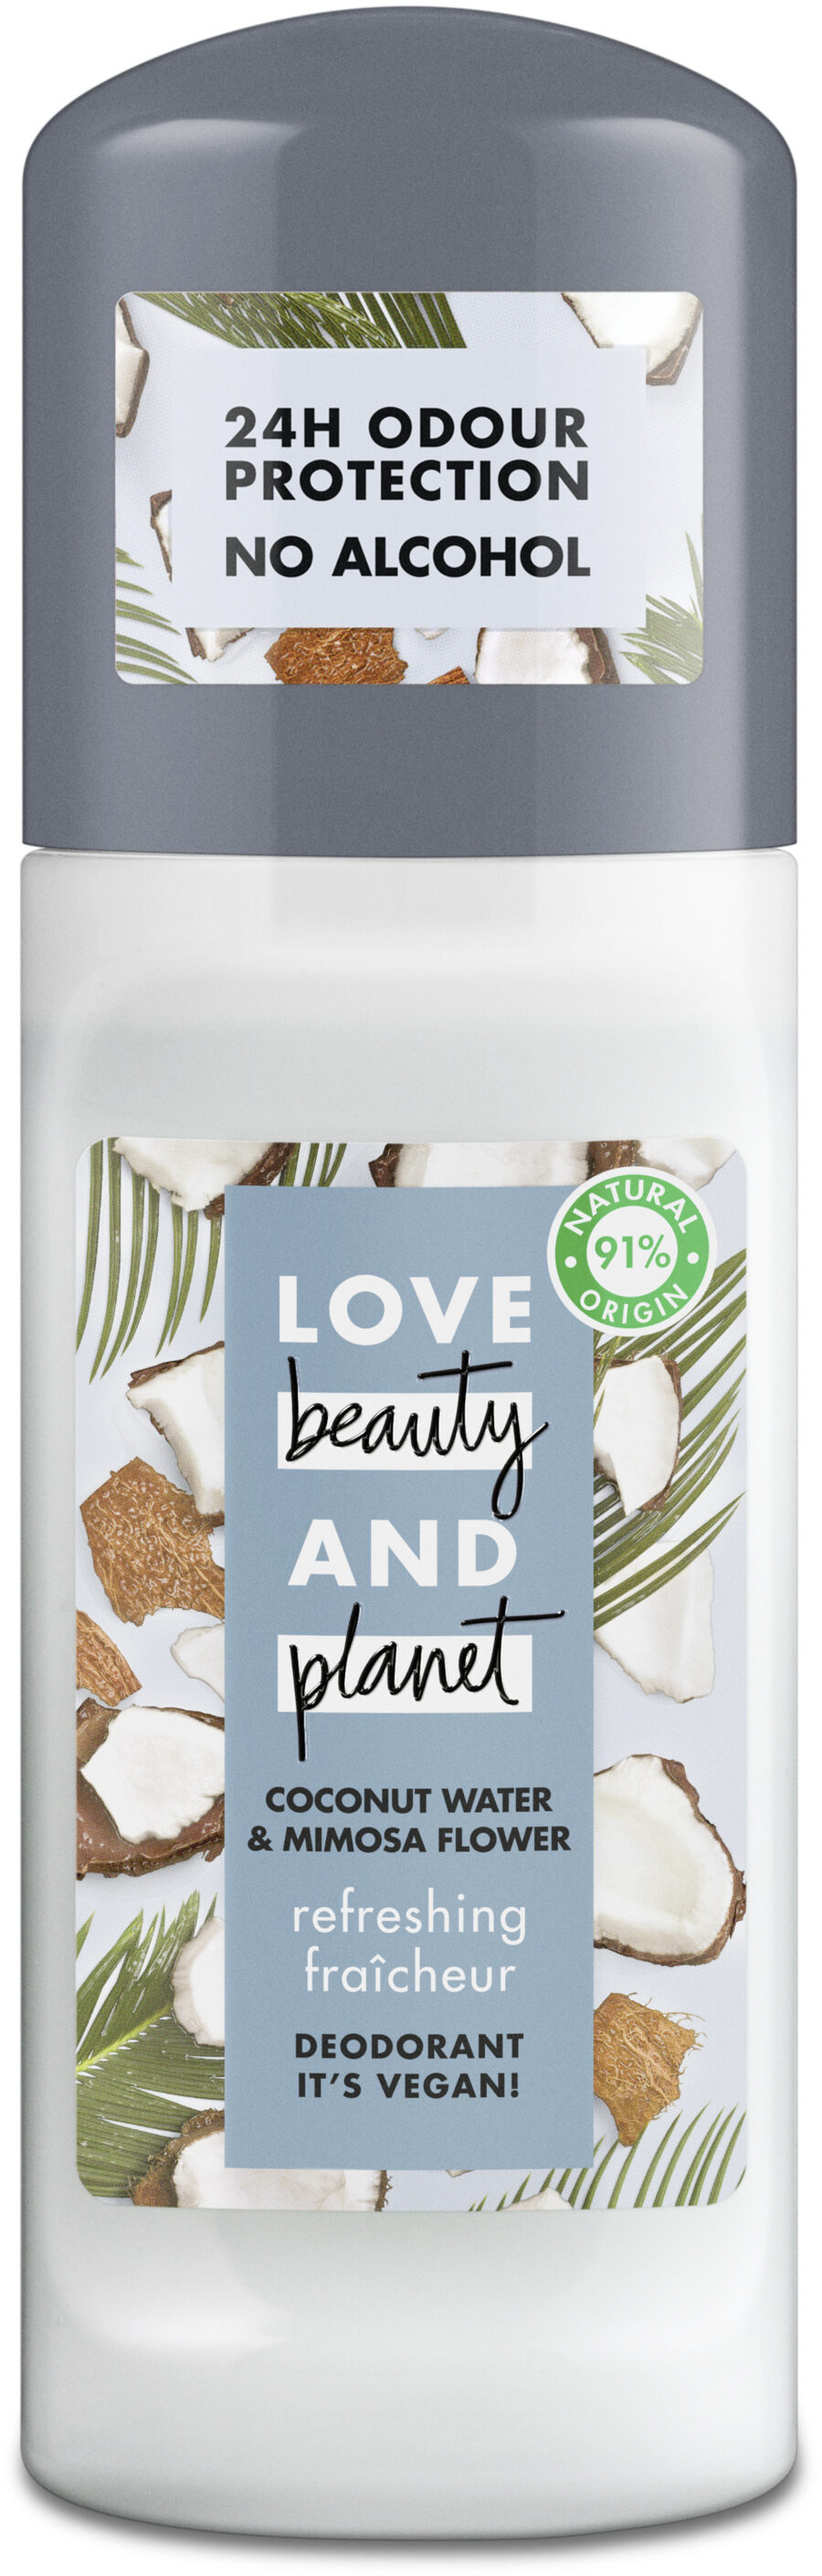 Love Beauty And Planet Déodorant Femme Bille Fraîcheur - Product - fr